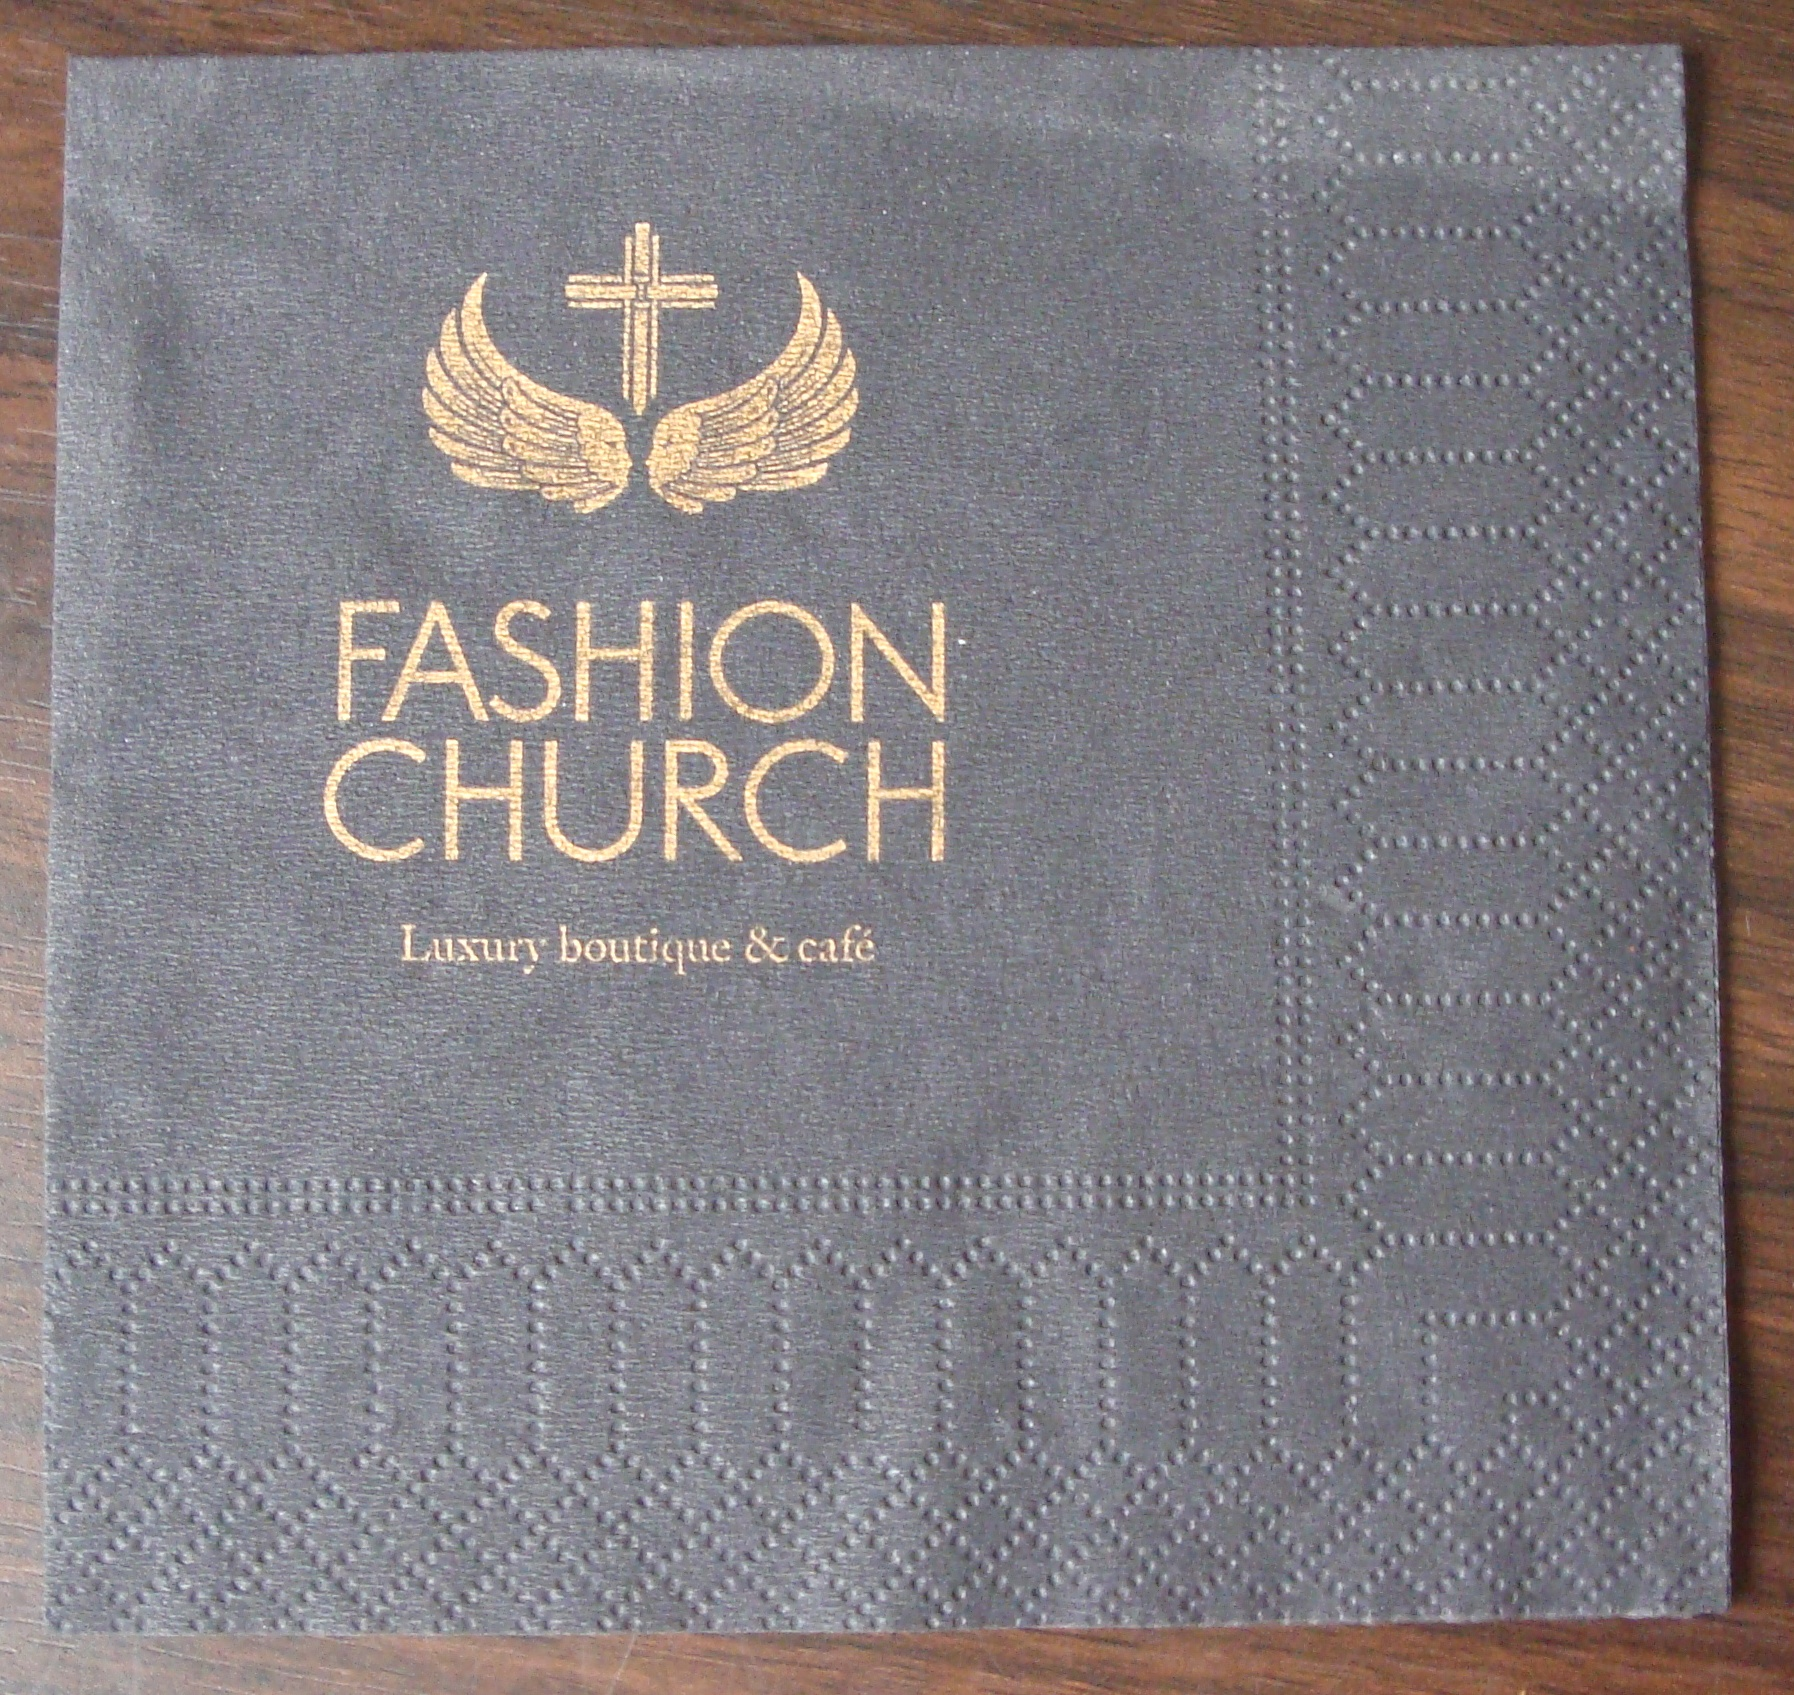 Fashion church